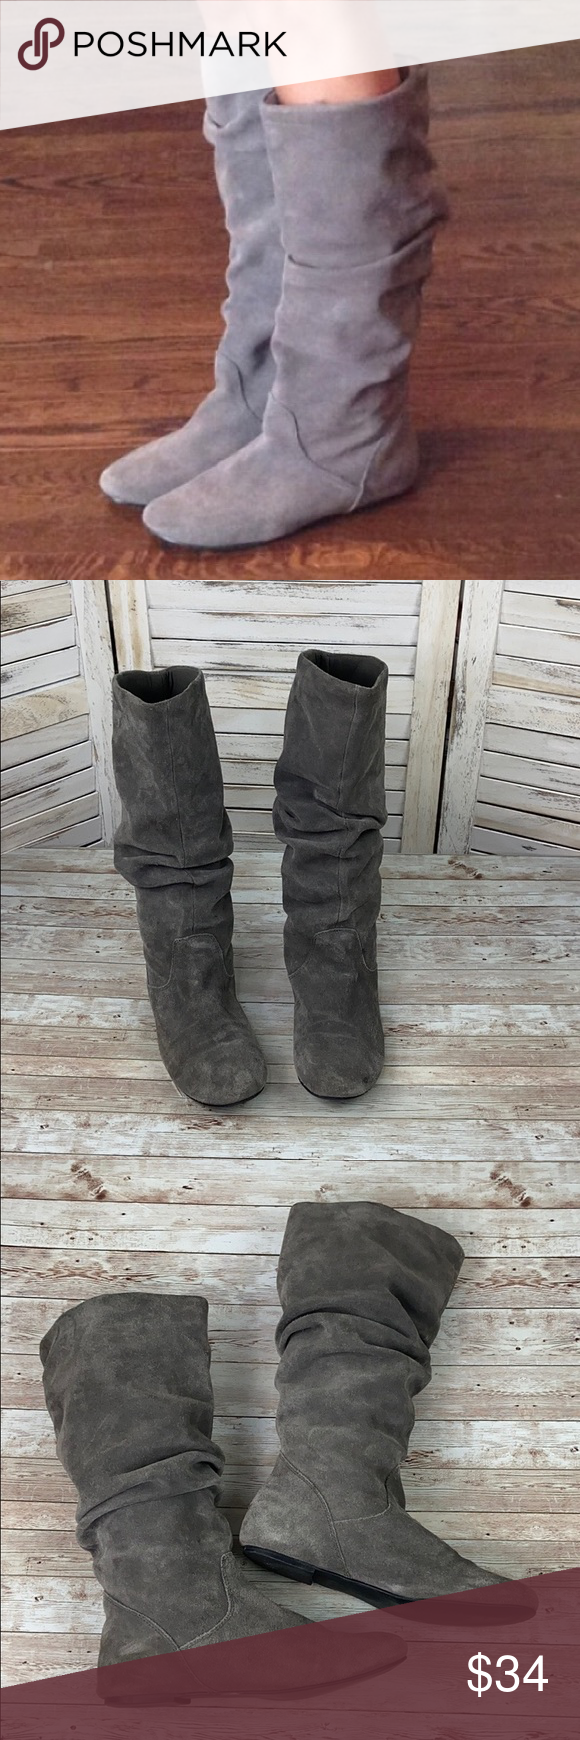 Separar Adjunto archivo compromiso  STEVE MADDEN | Tianna Suede Slouch Boots | Slouched boots, Boots, Steve  madden shoes